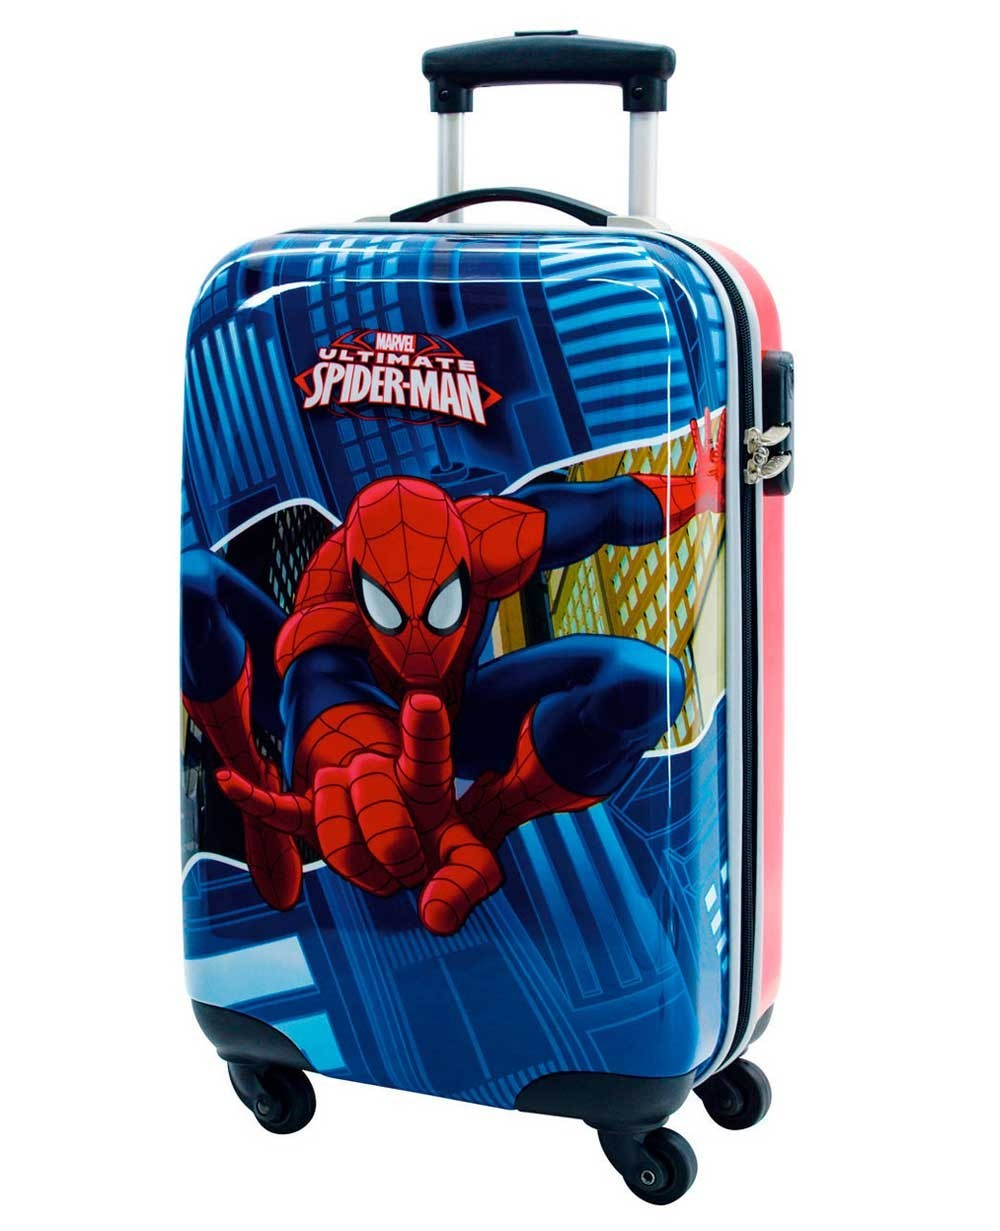 Marvel Spiderman Maleta de mano Azul